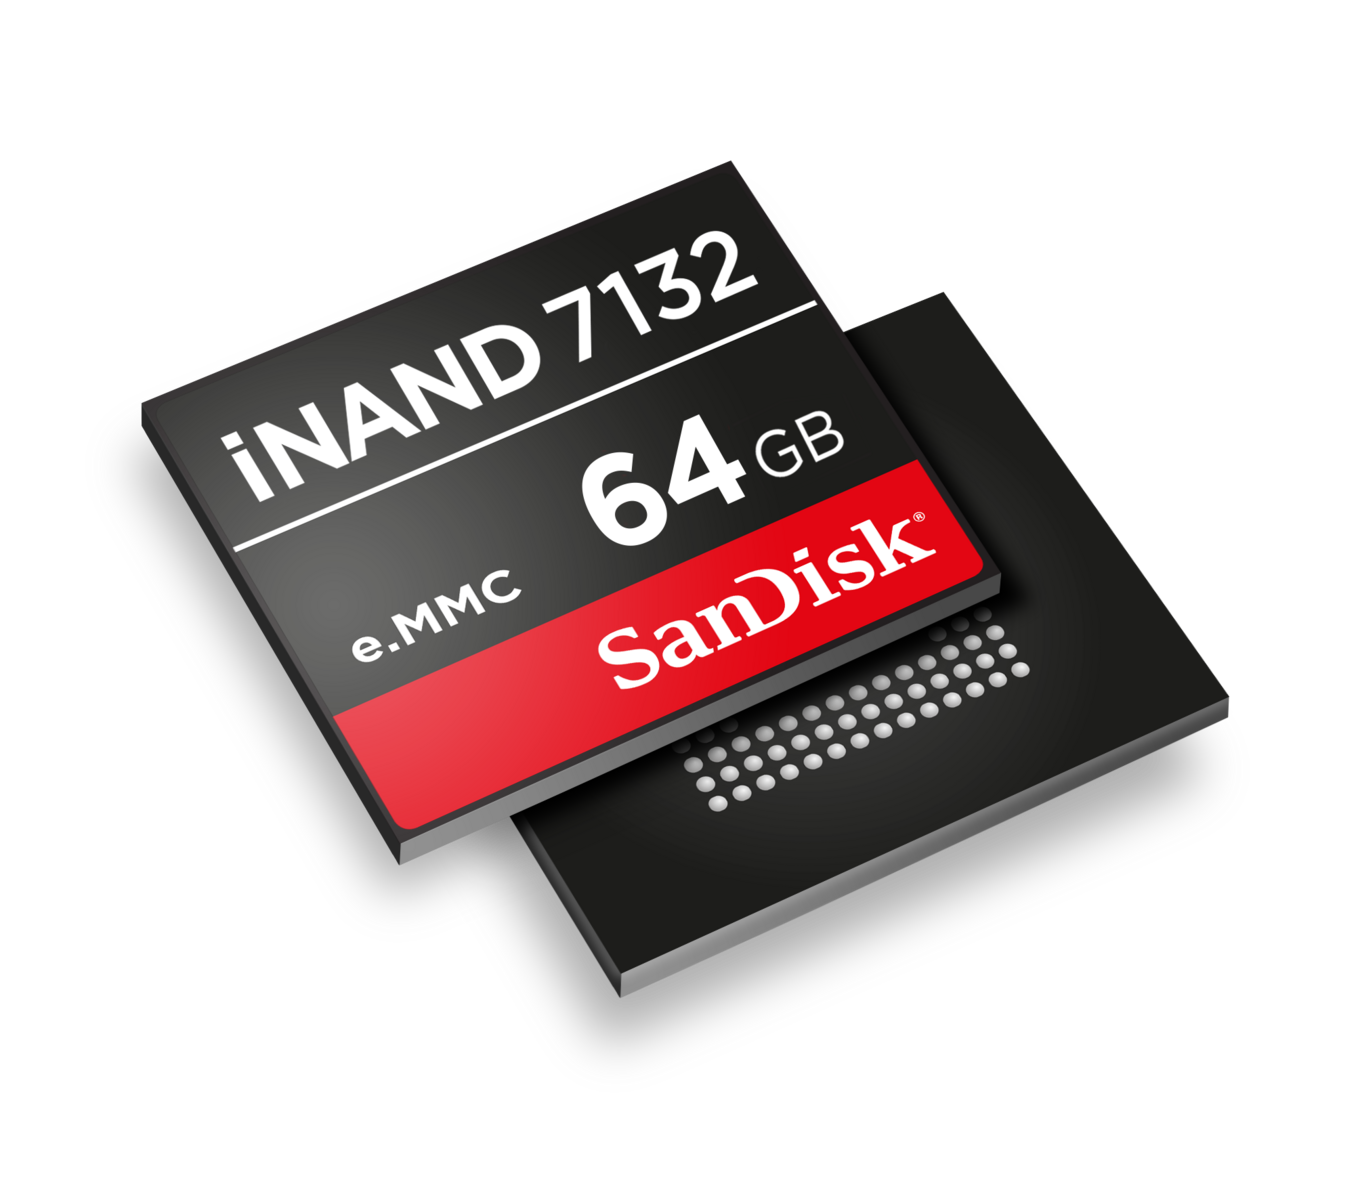 SanDisk introduces iNAND 7132 eMMC storage and several